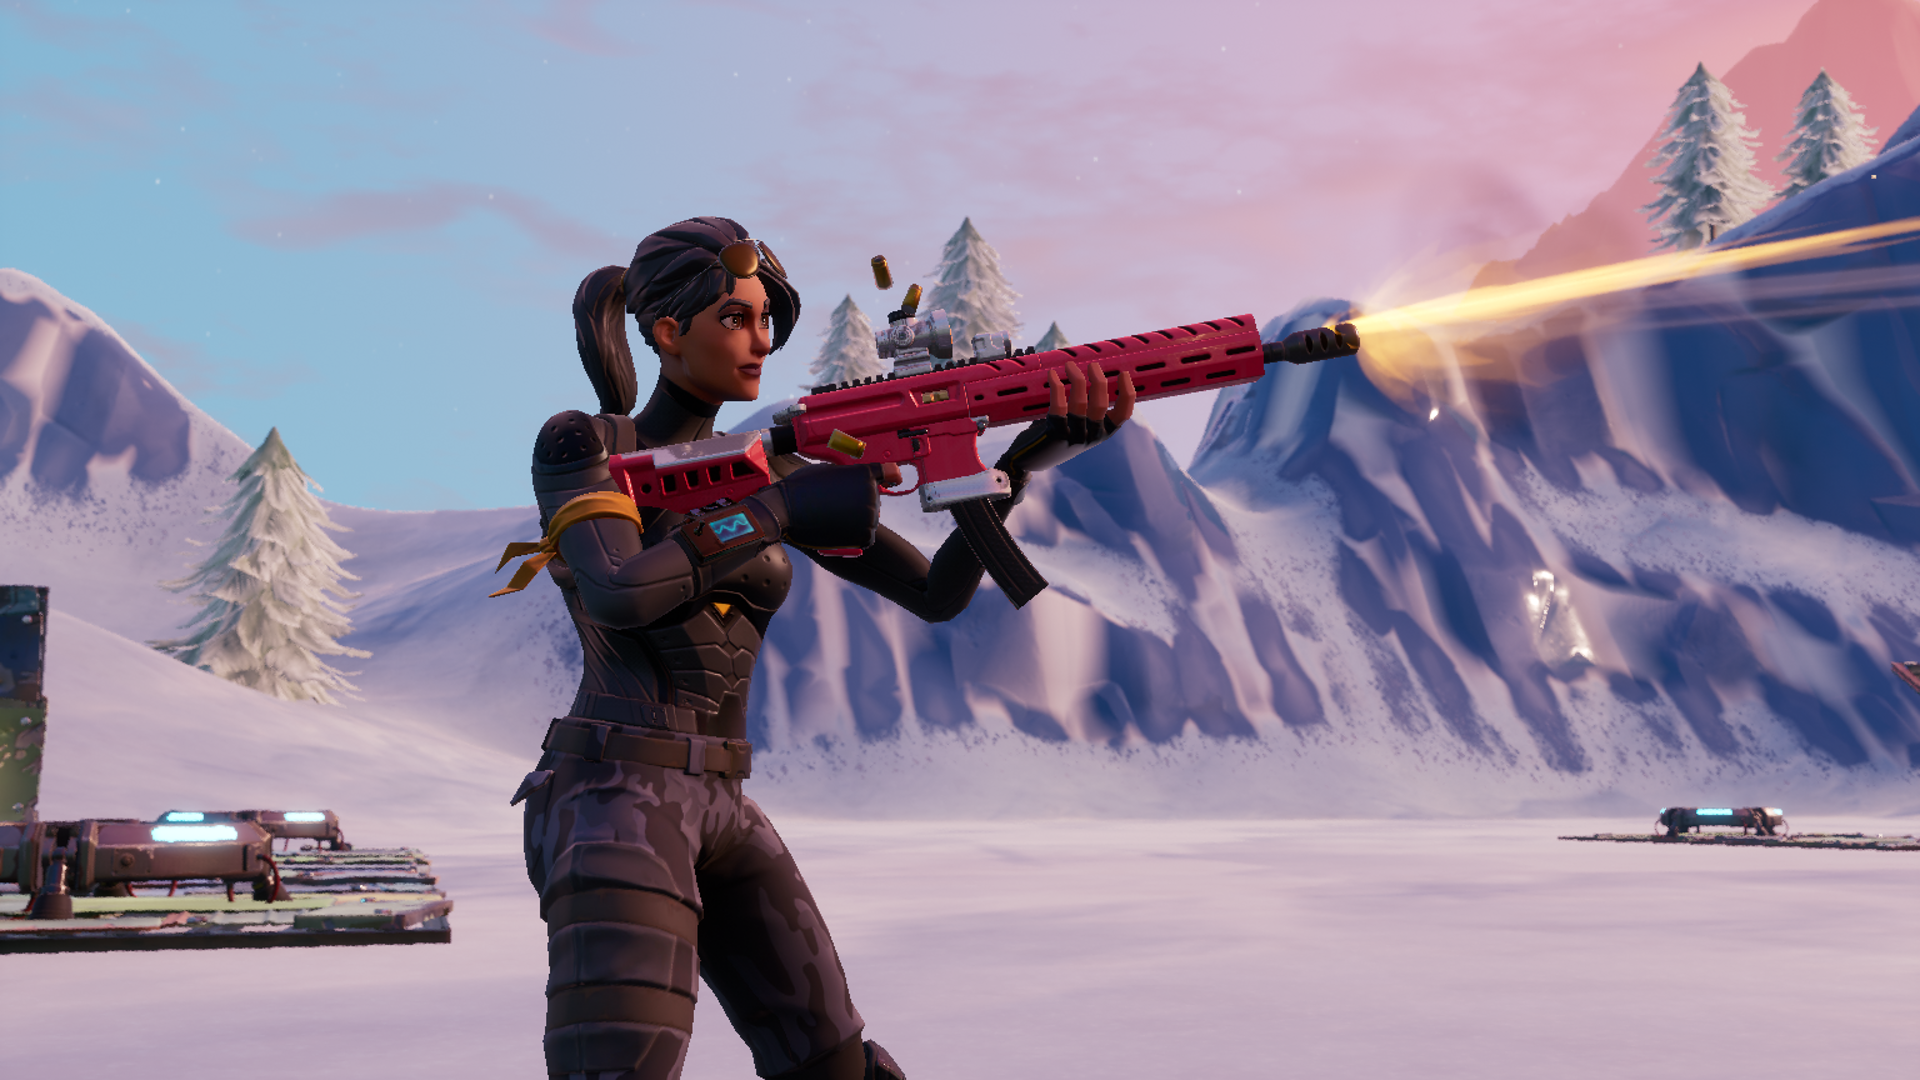 Fortnite hotfix rolls out to address building delays